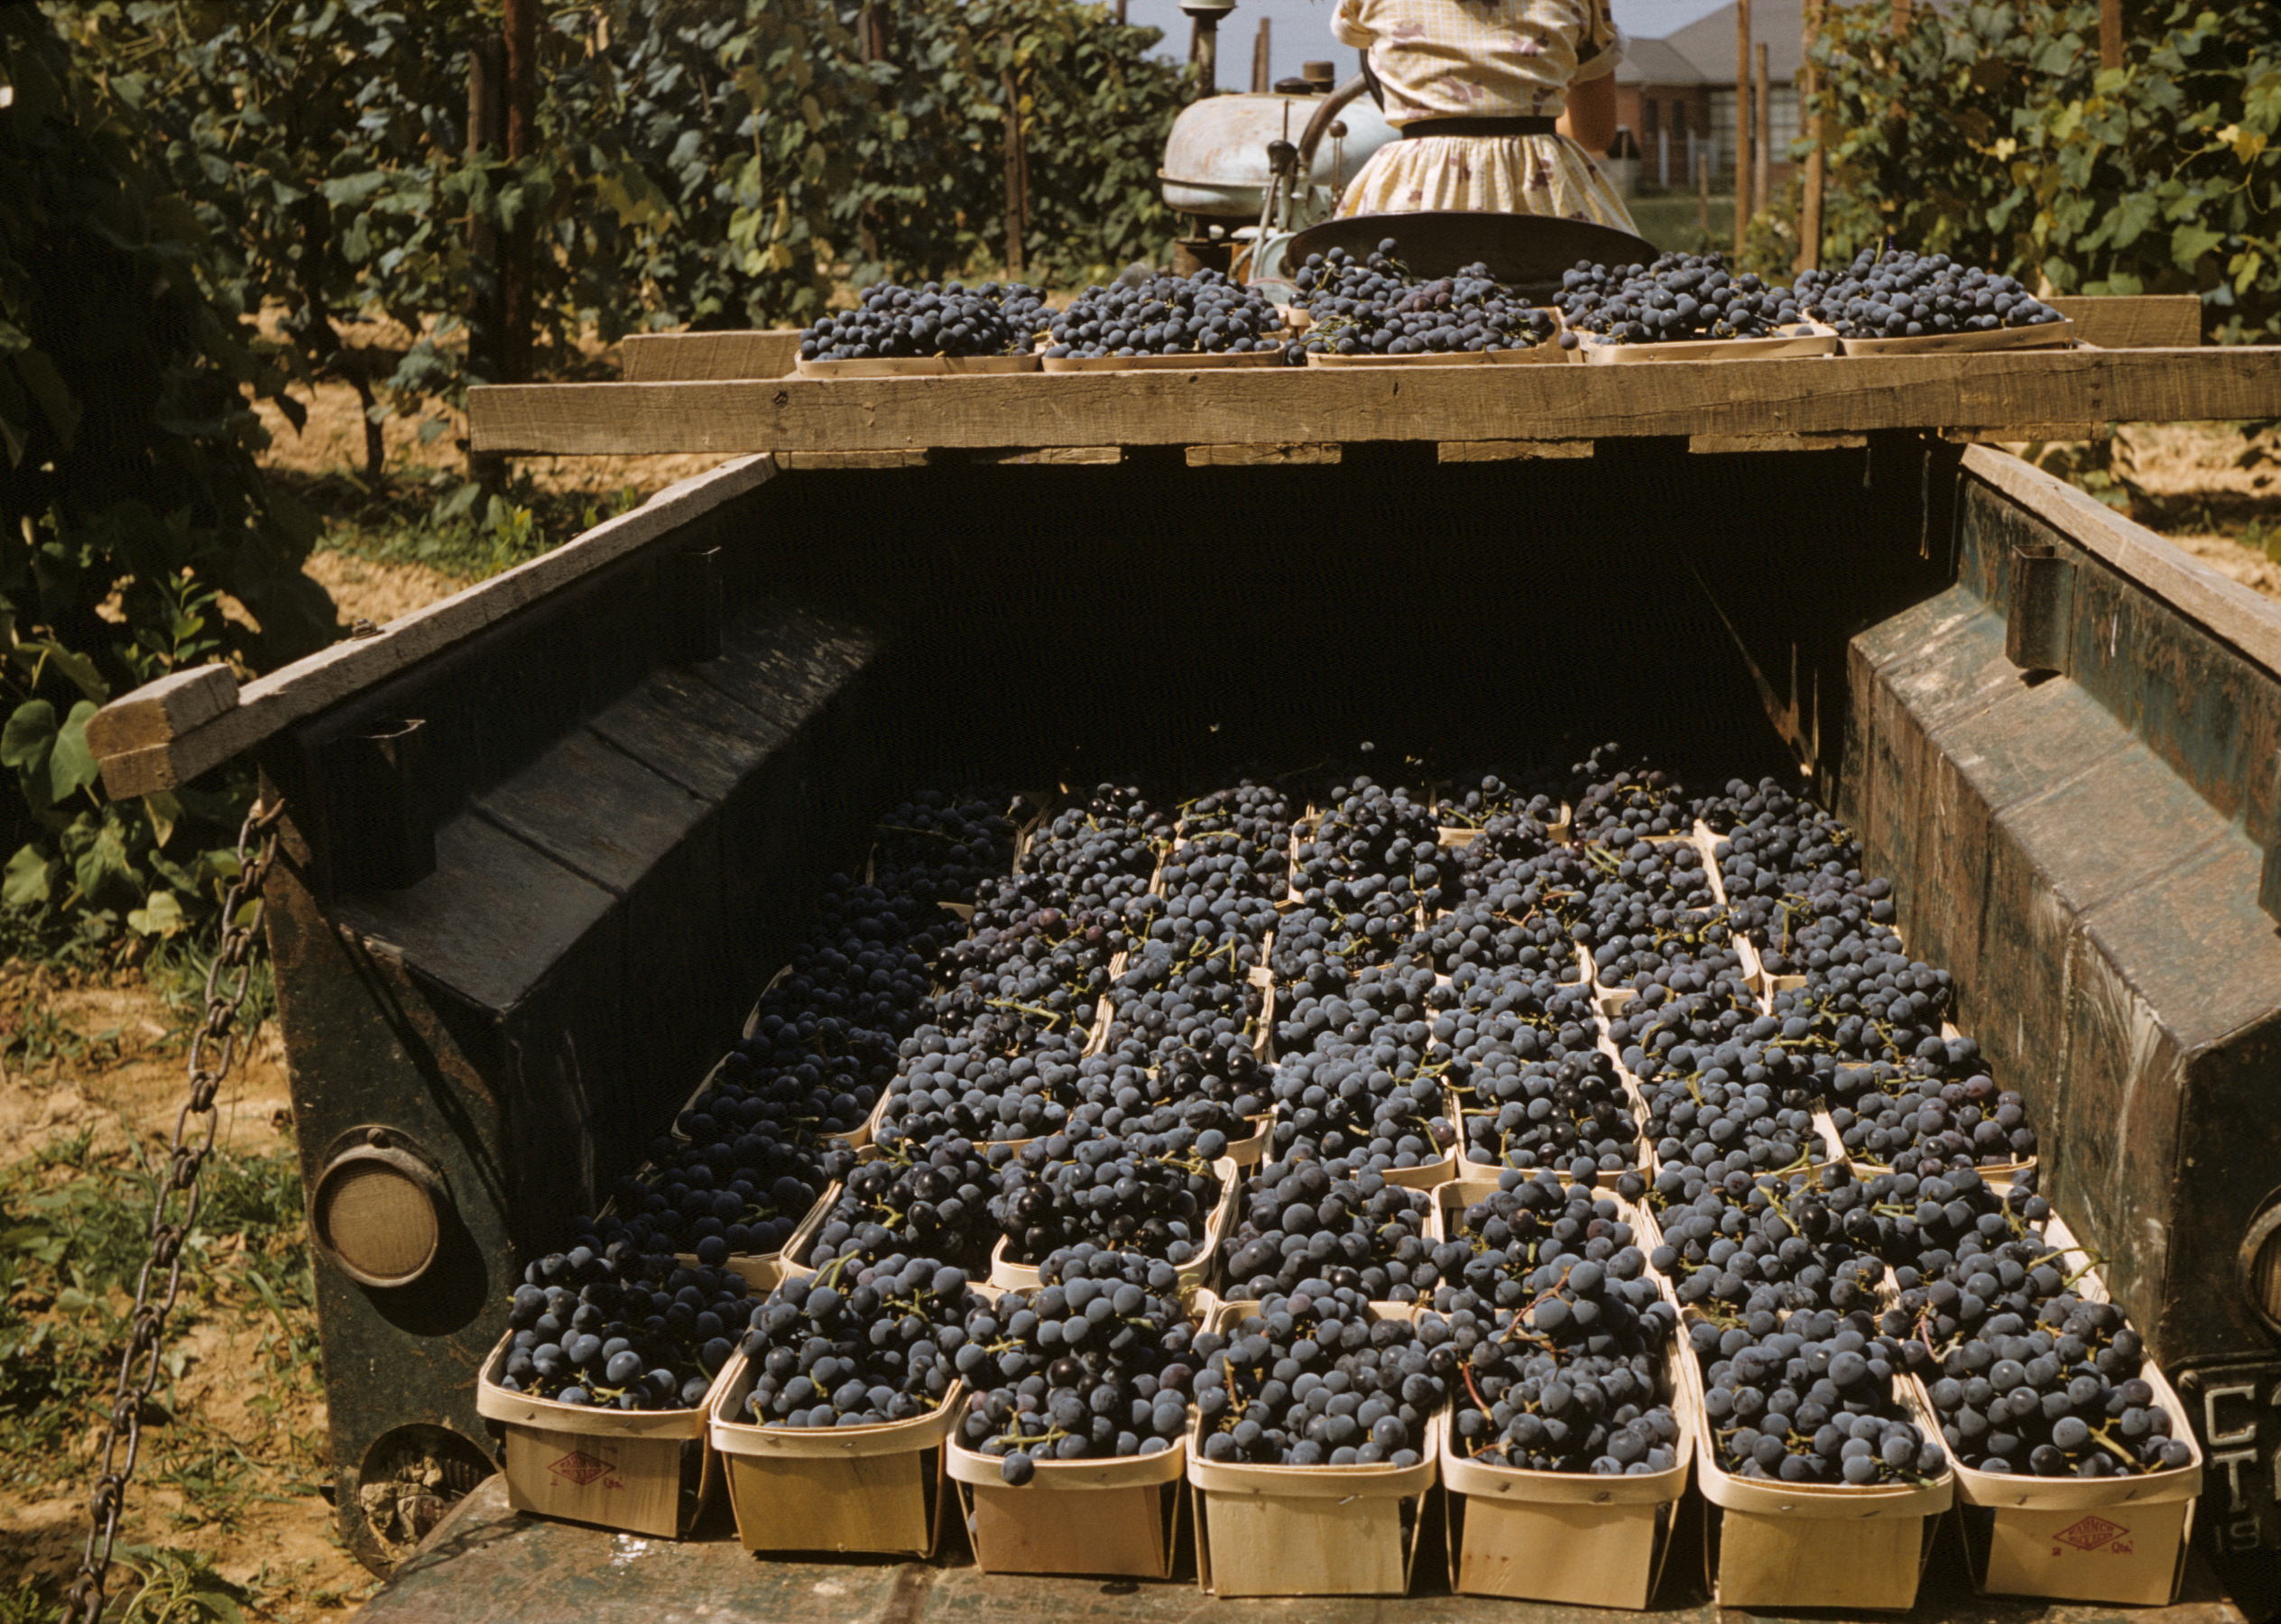 Hauling freshly picked grapes in the 1960's. Wenger Grapes.